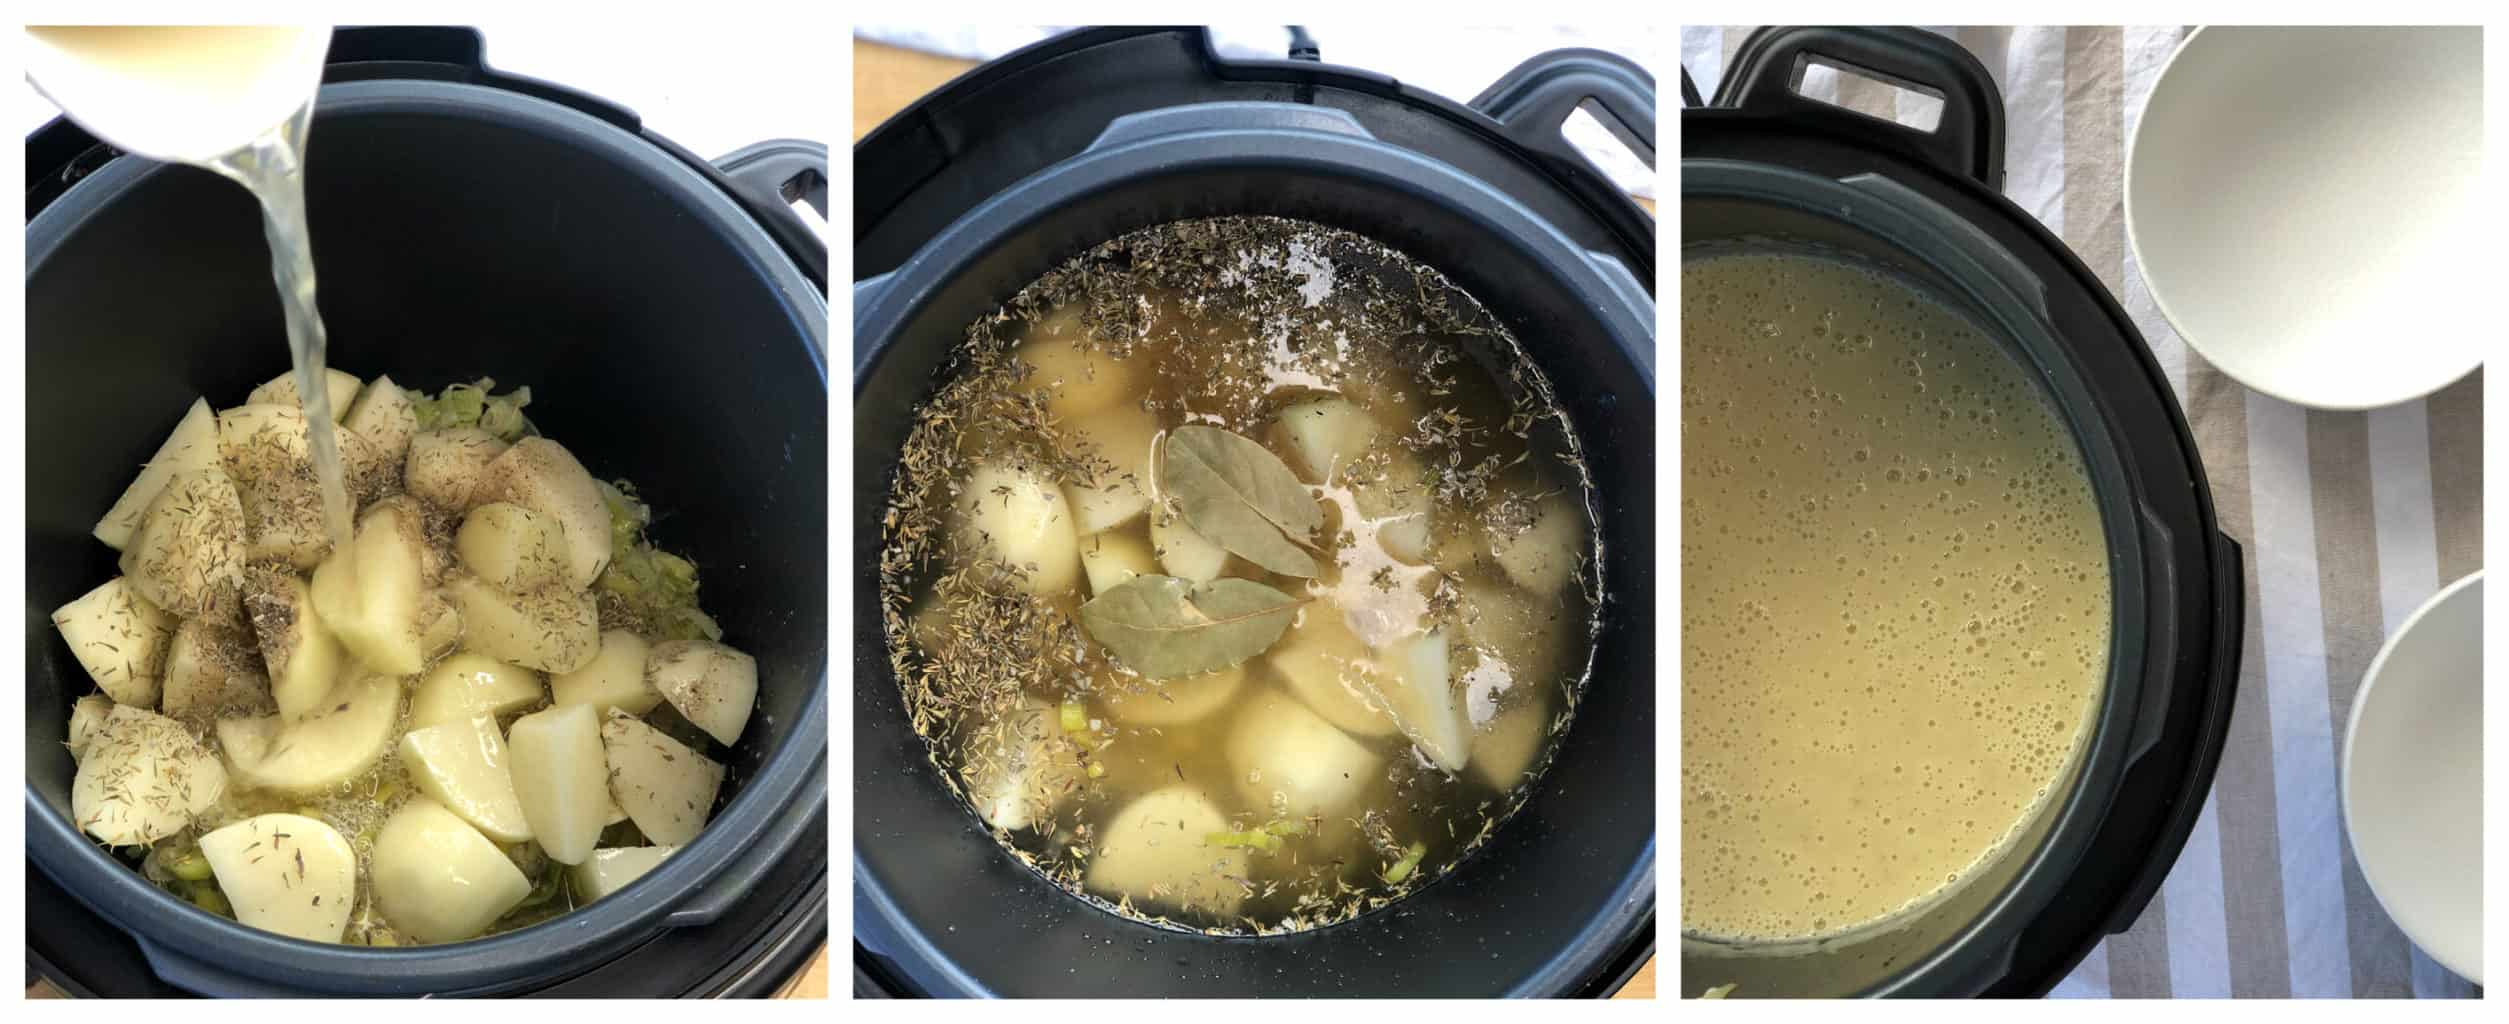 How to make and blend slow cooker potato and leek soup